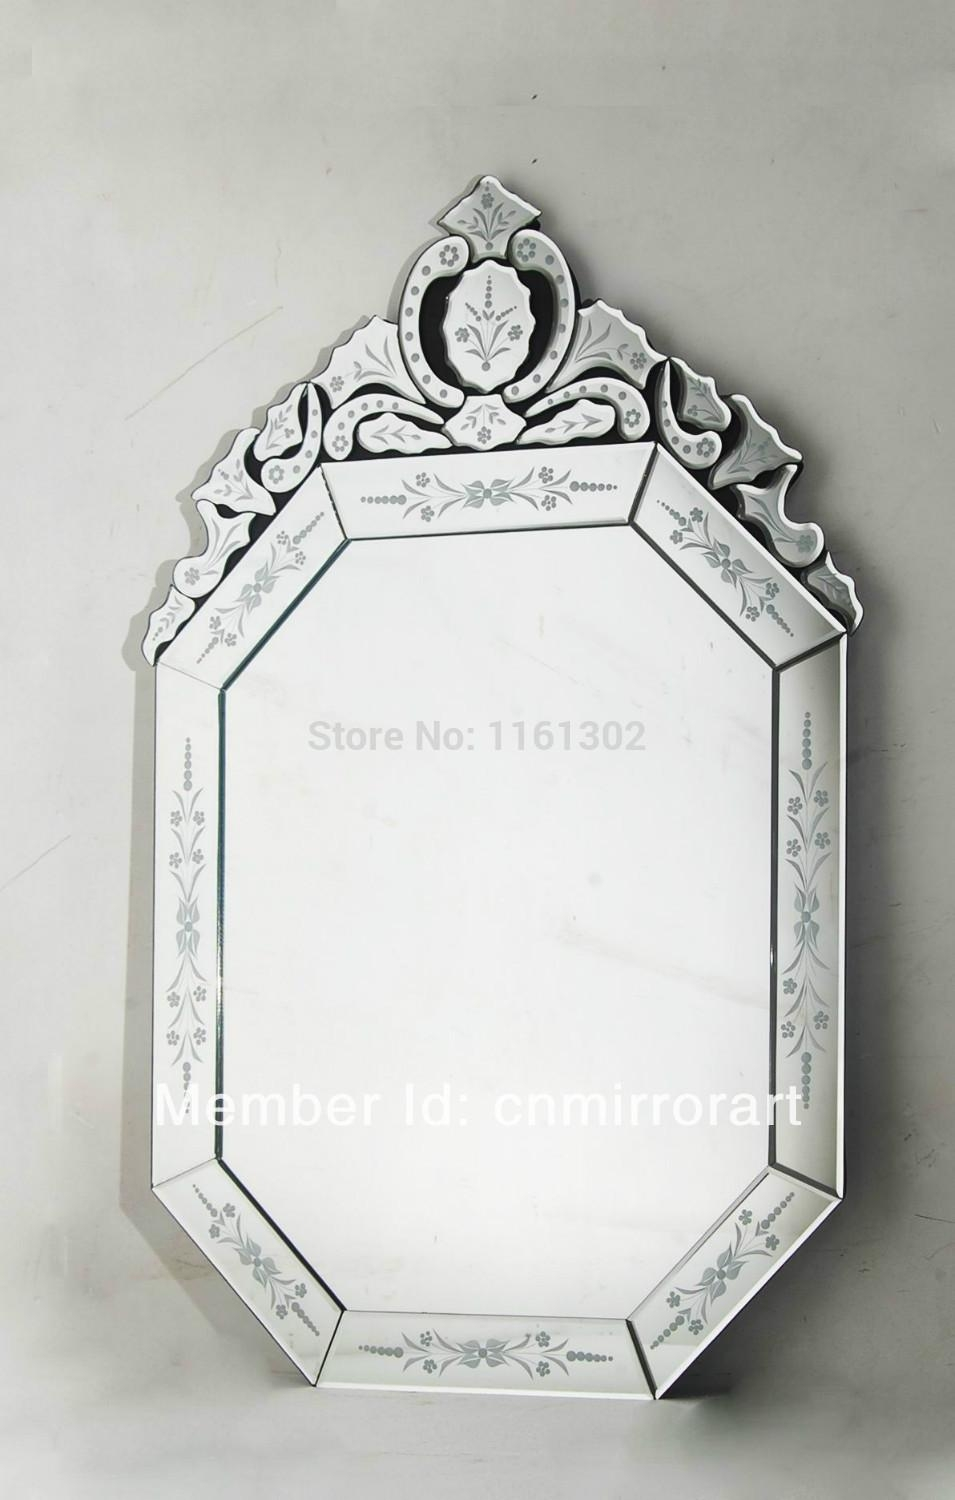 Online Buy Wholesale Venetian Mirrors From China Venetian Mirrors With Regard To Black Venetian Mirror (Image 12 of 20)